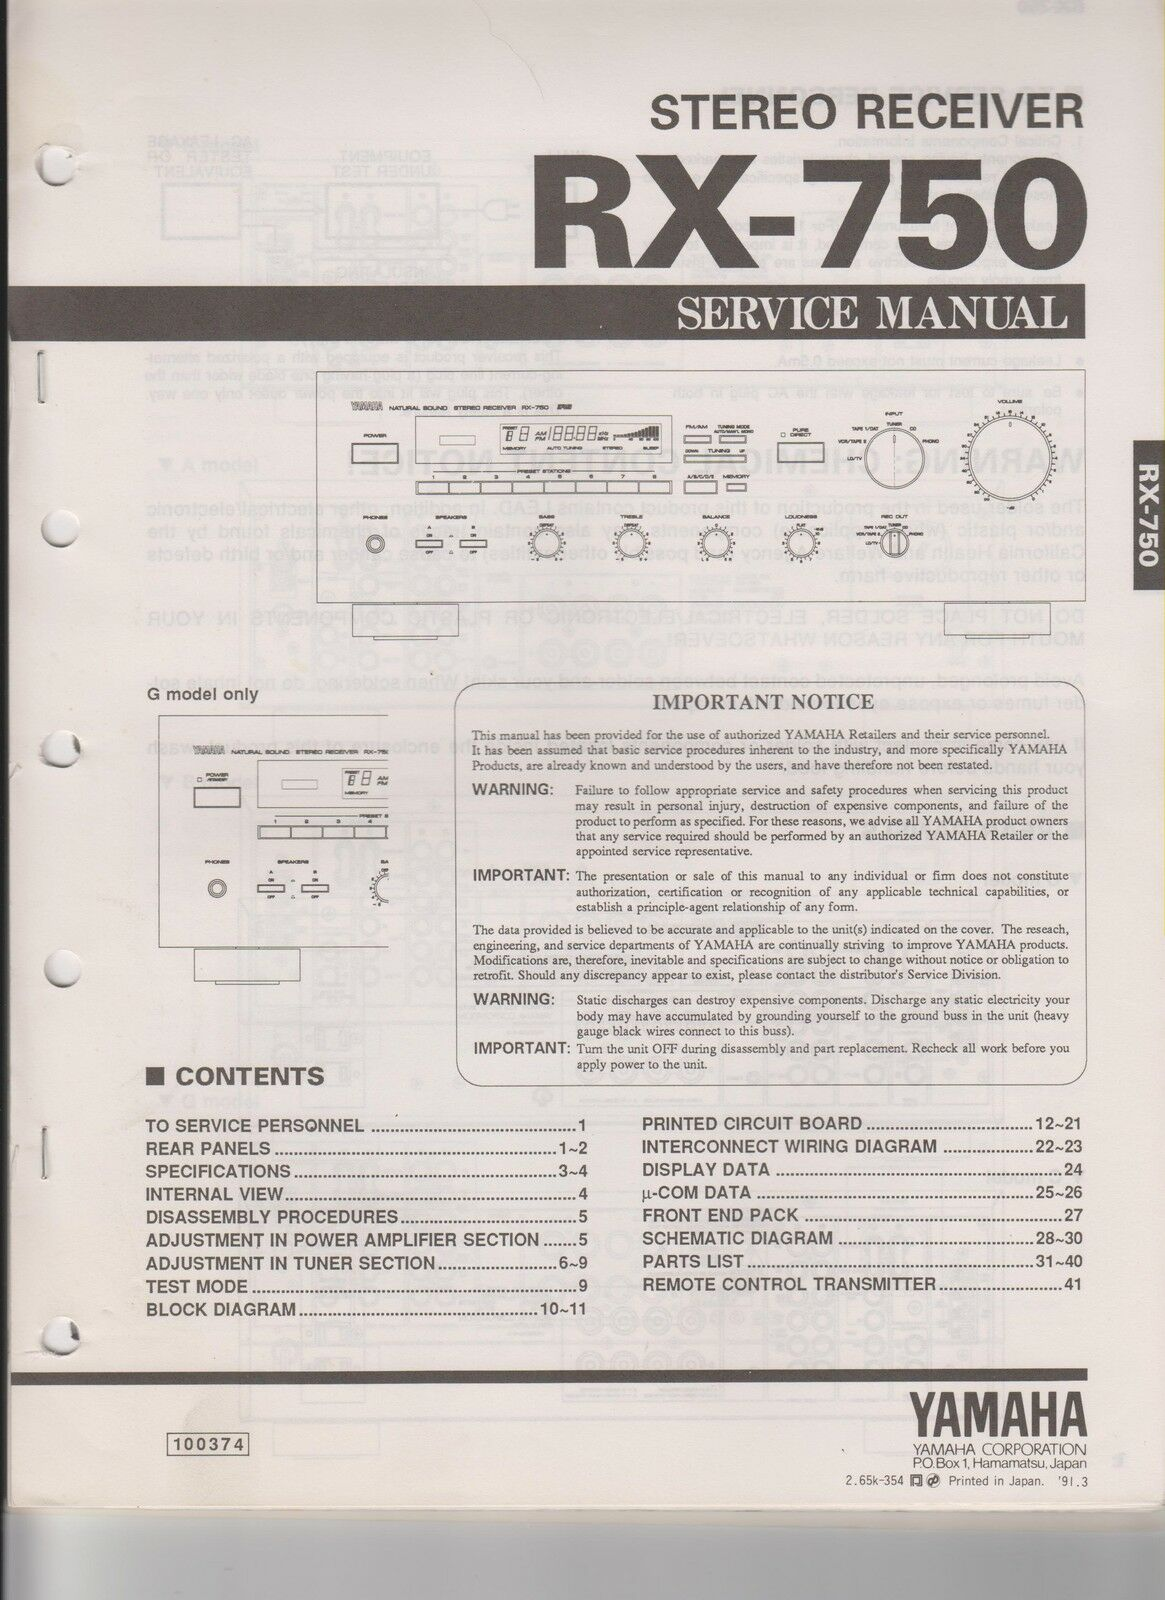 Original Yamaha Rx 750 Stereo Receiver Service Manual 1299 Wiring Diagram 1 Of 1only Available